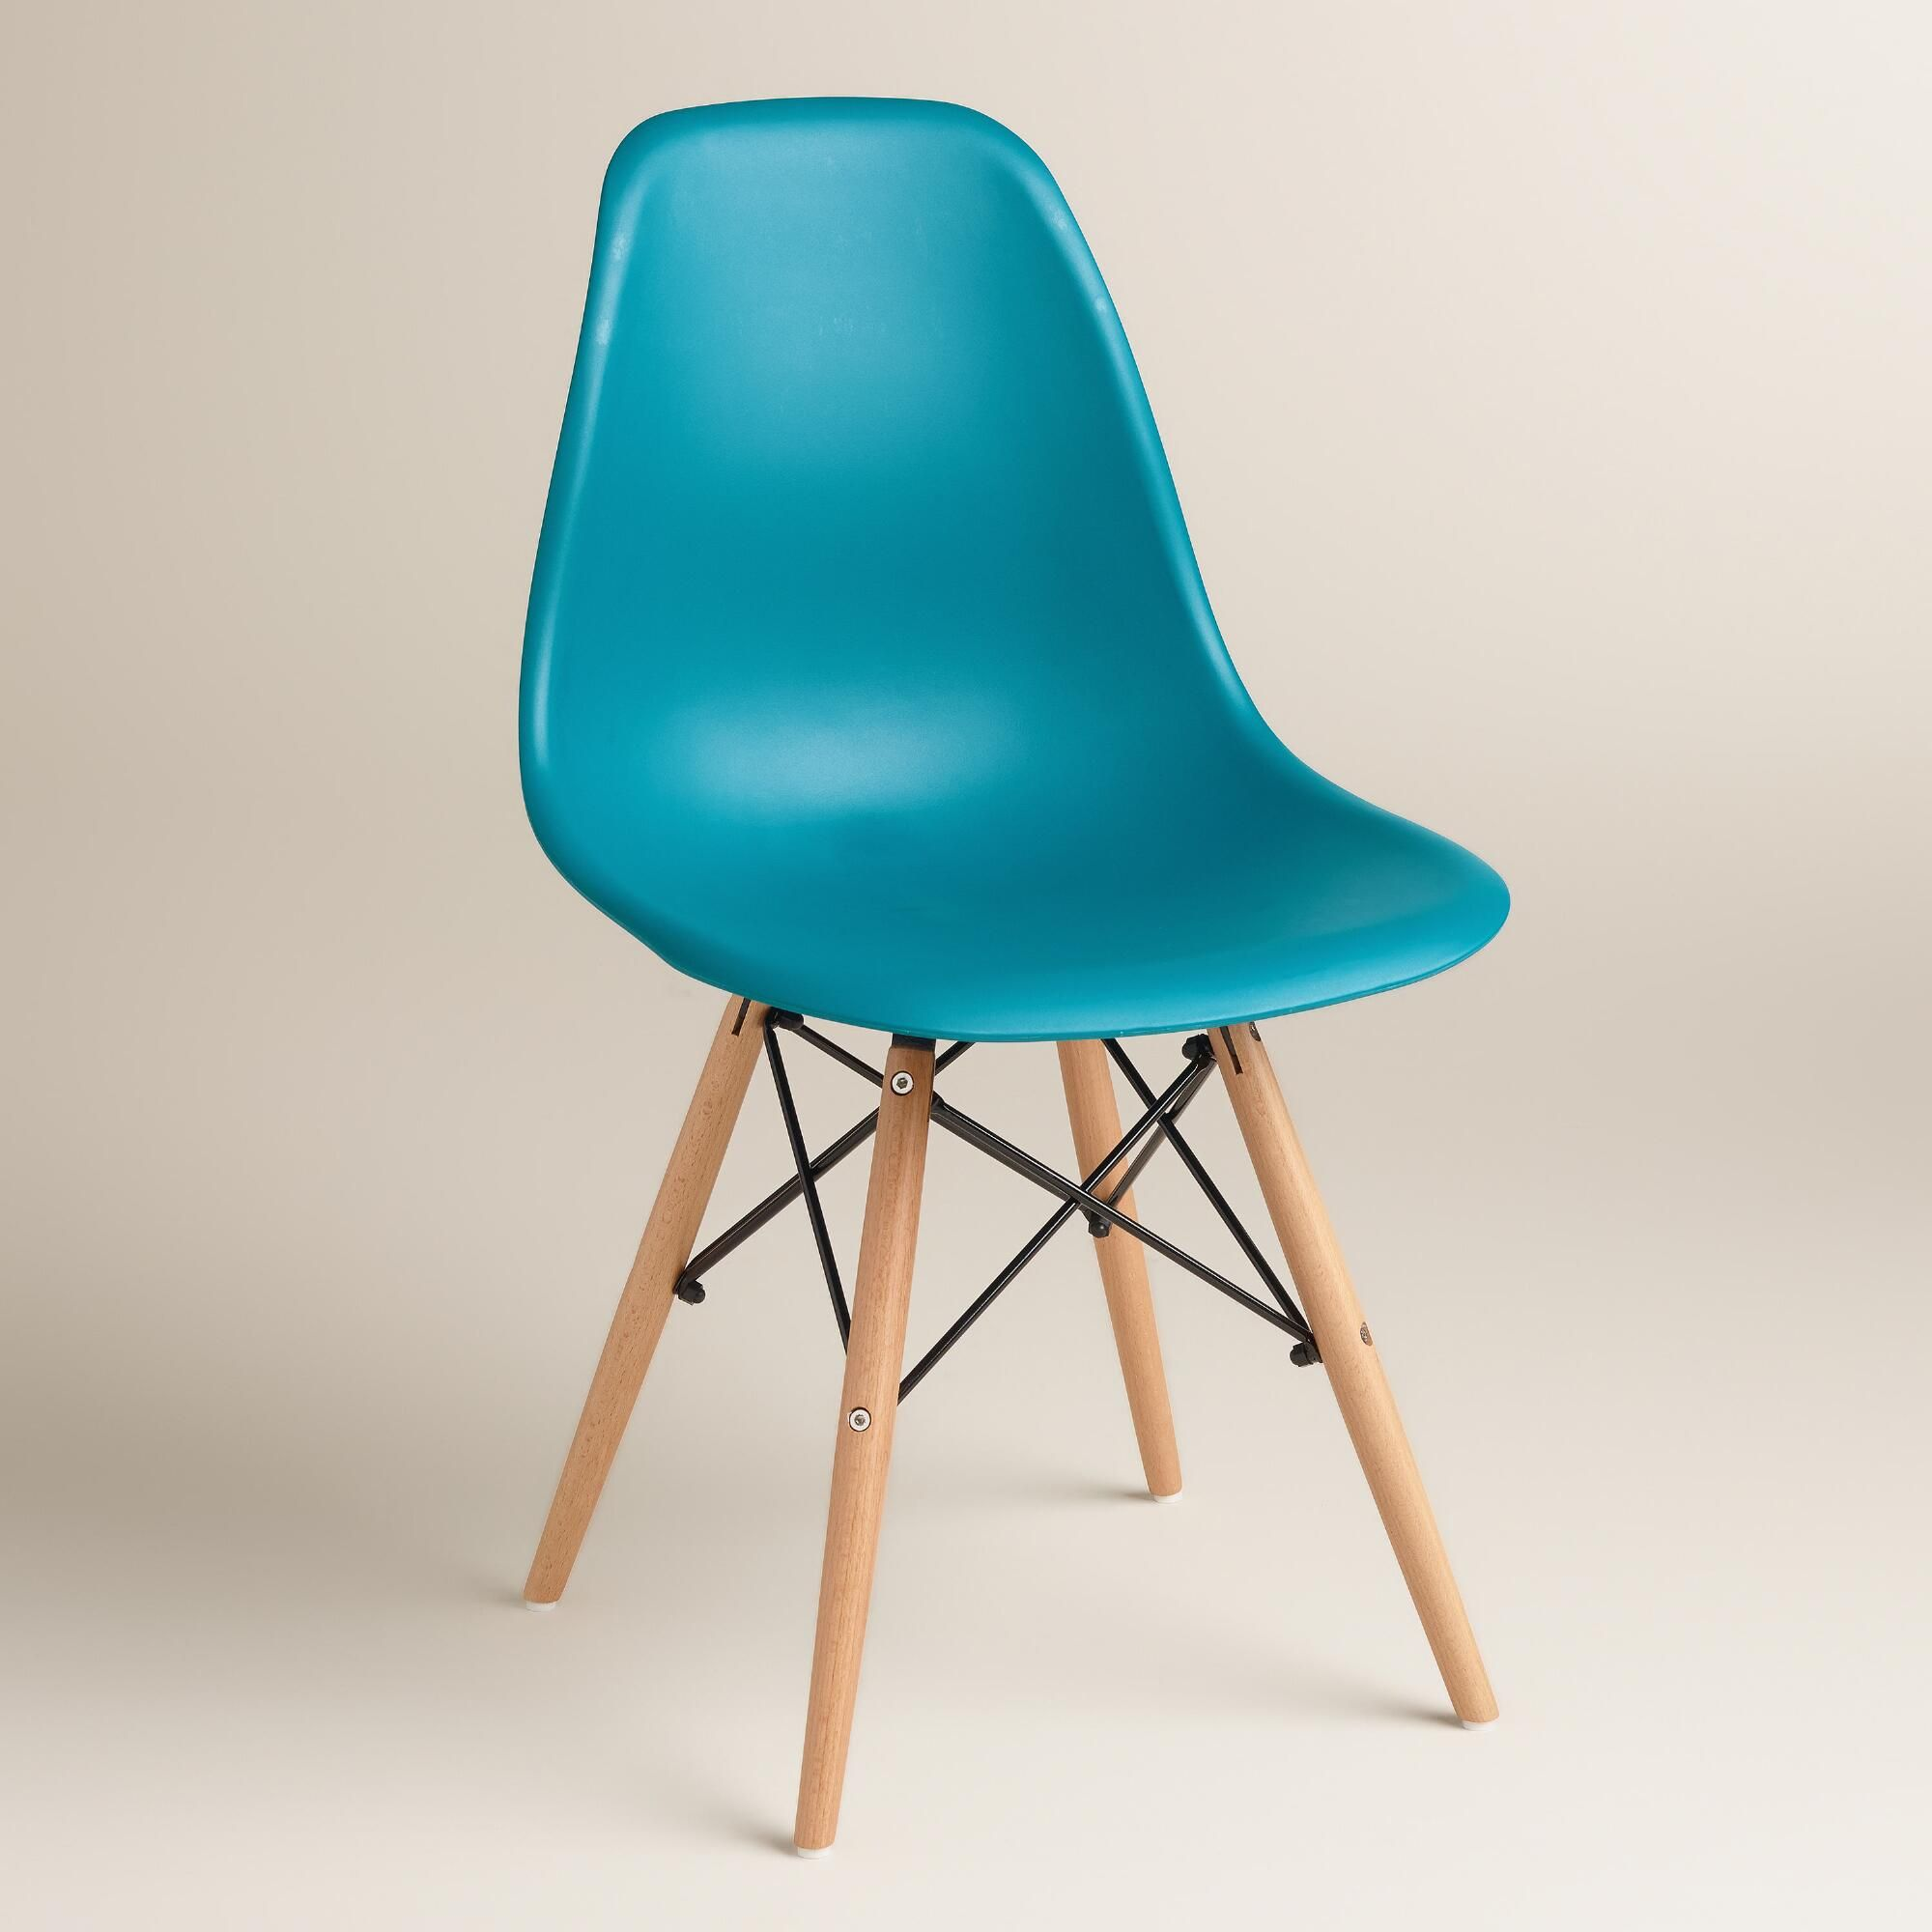 With A Mid Century Modern Aesthetic And A Sculptural Look